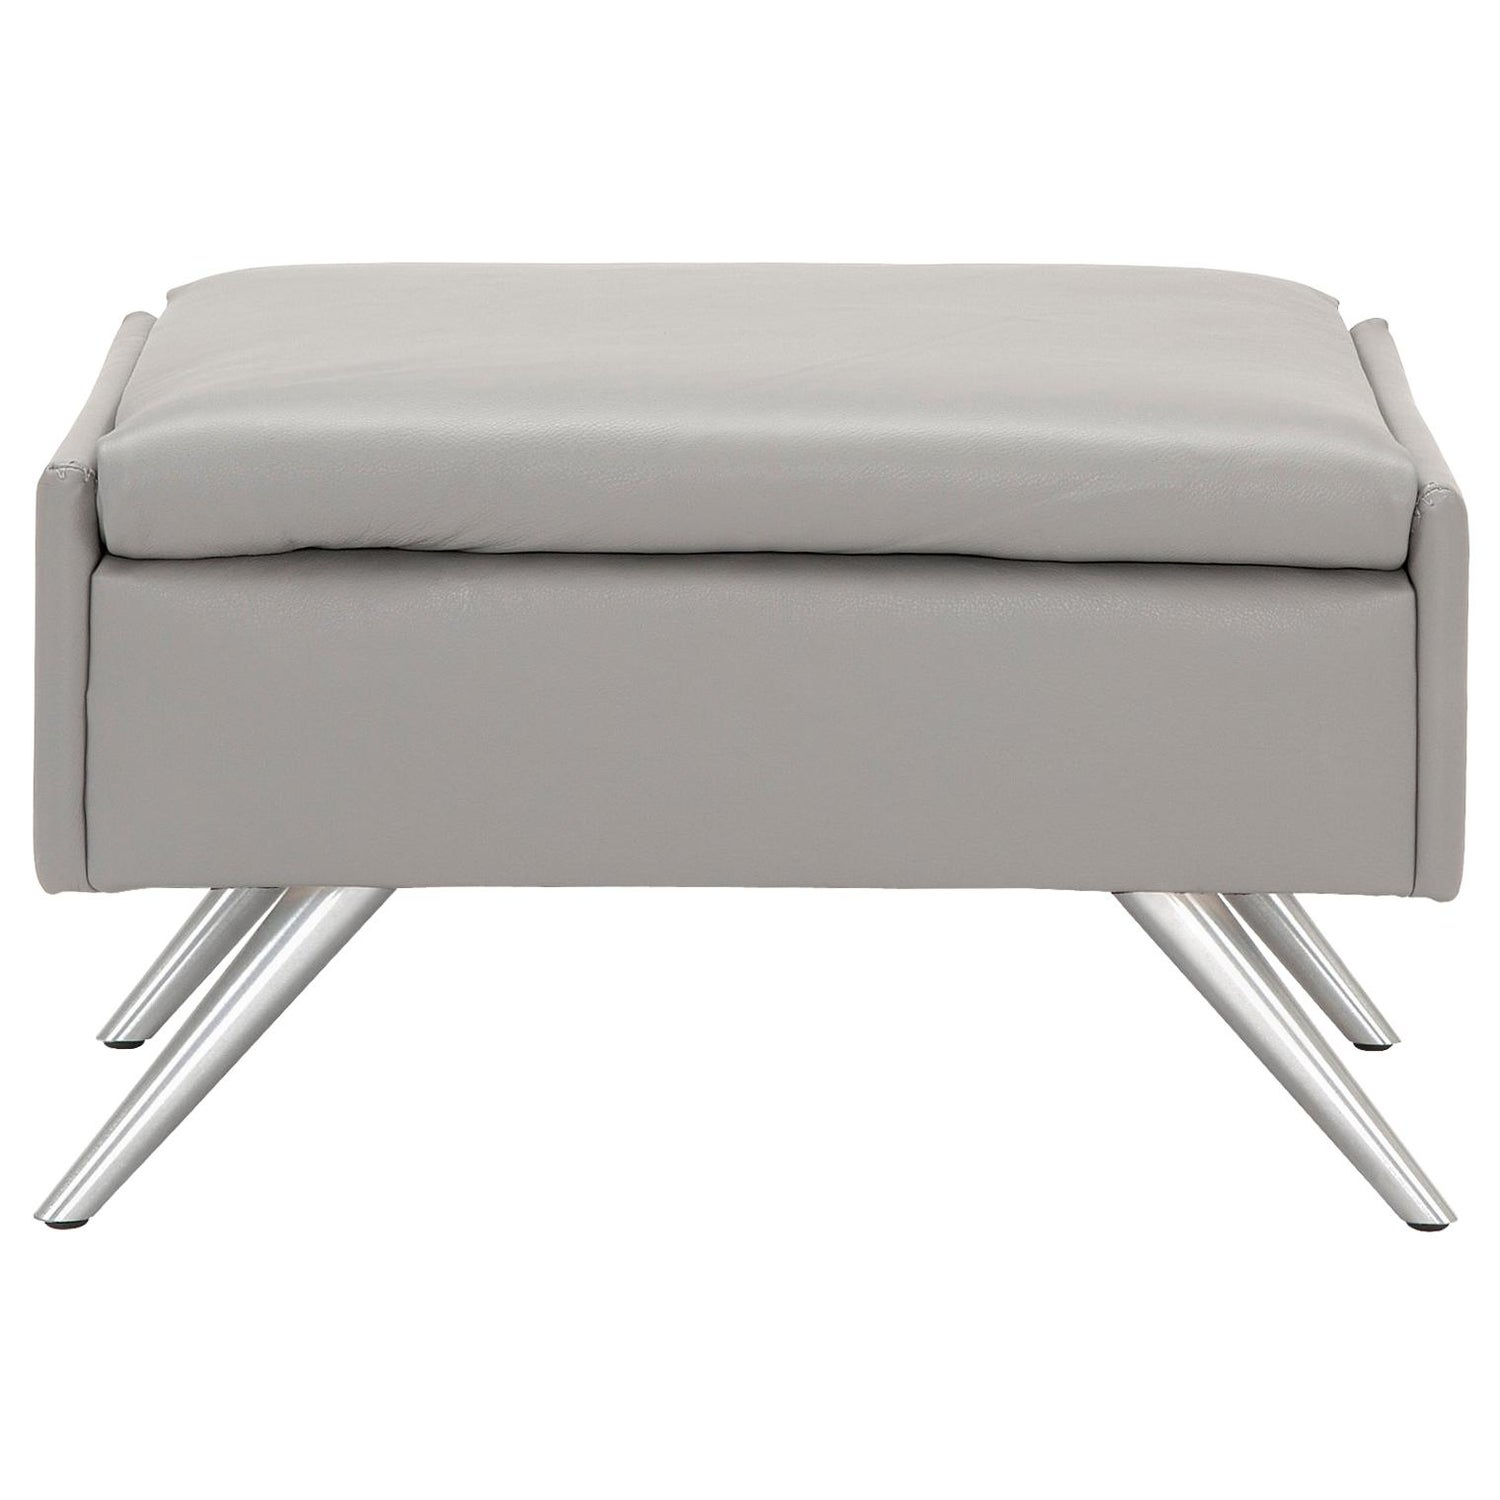 Astonishing Amura Al Pouf In Light Gray Leather By Luca Scacchetti Squirreltailoven Fun Painted Chair Ideas Images Squirreltailovenorg